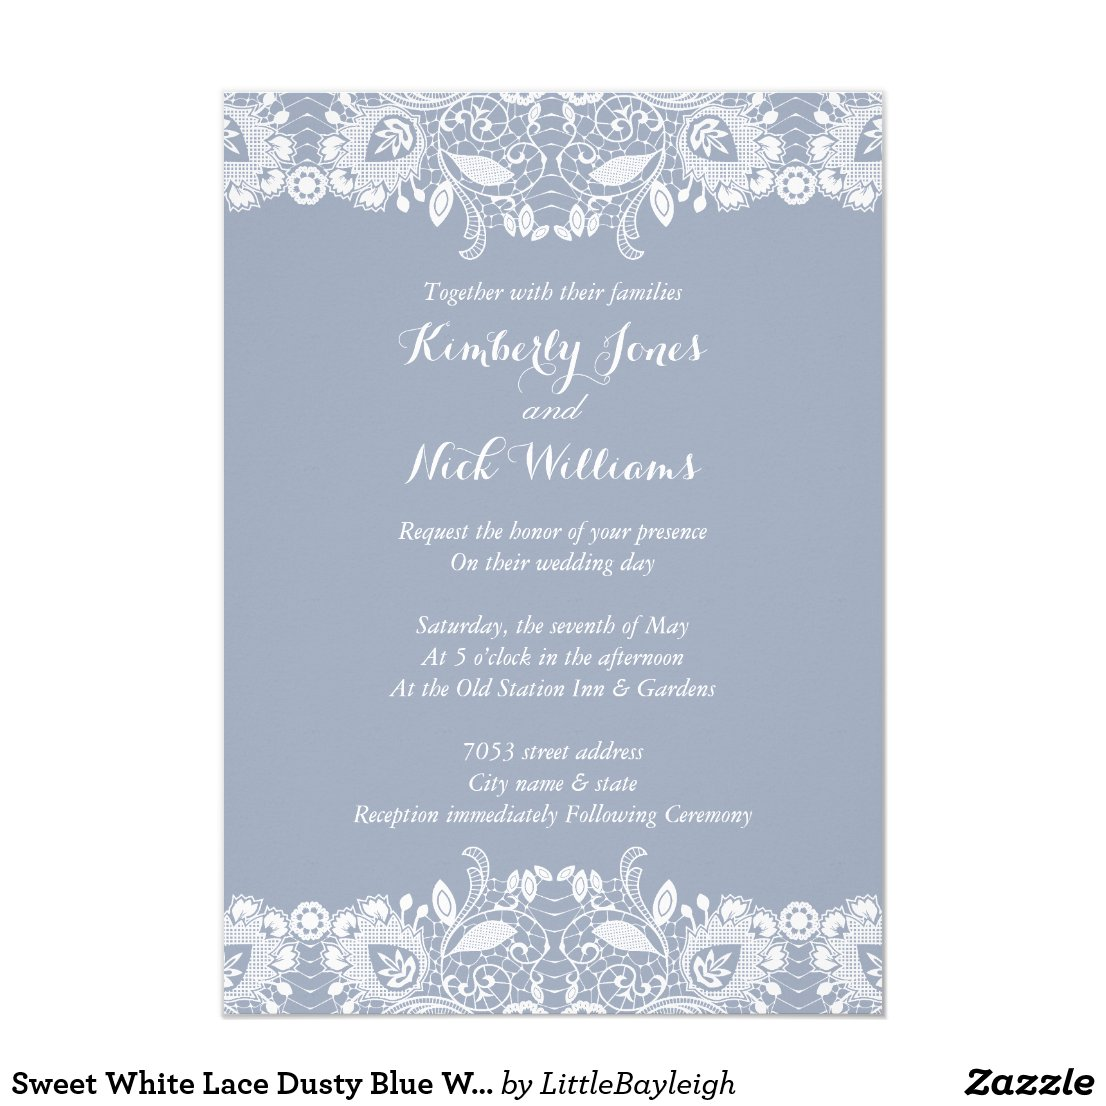 Sweet White Lace Dusty Blue Wedding Invitation